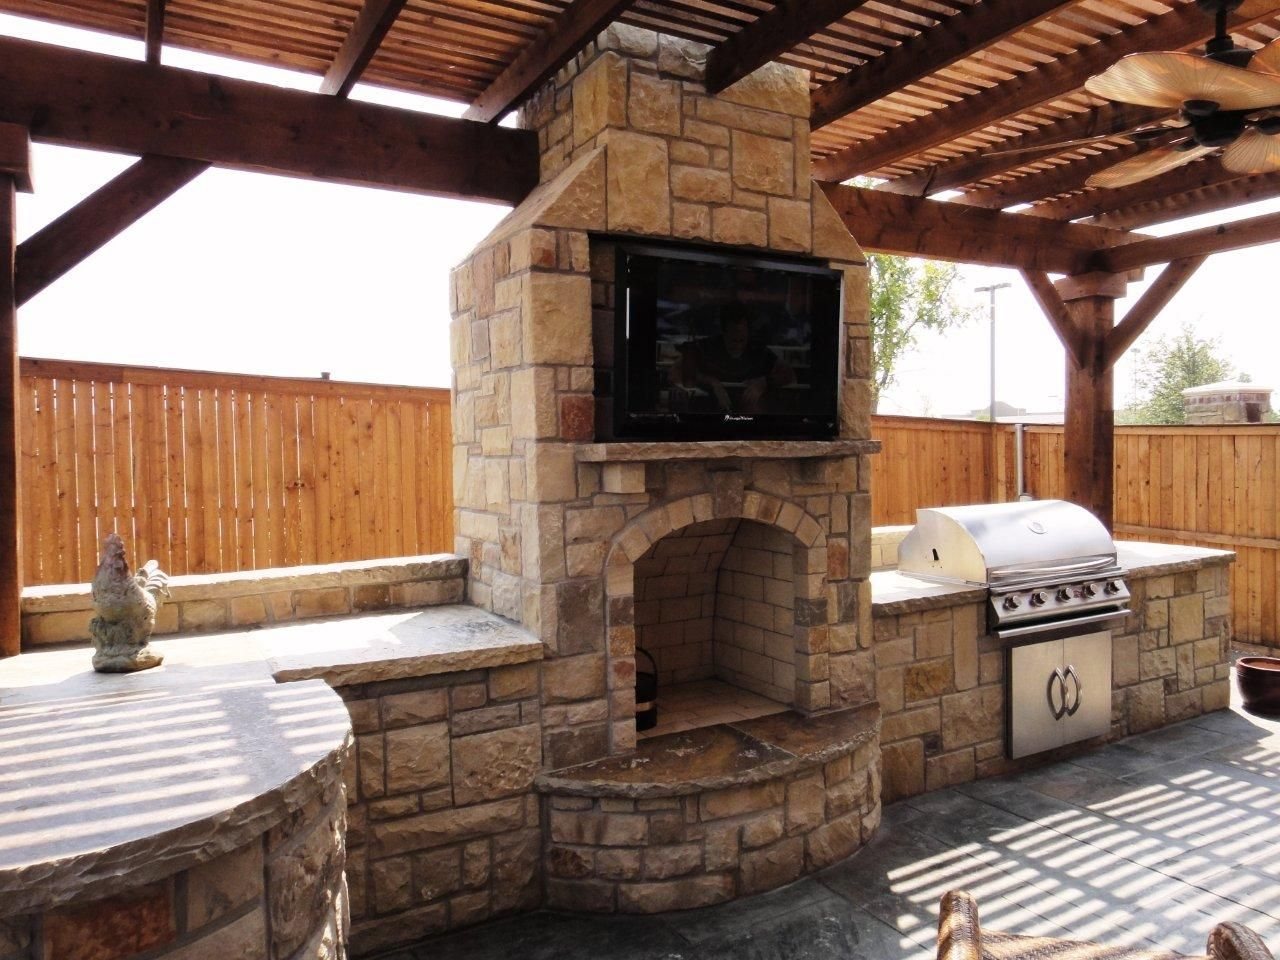 High Quality Outdoor Kitchen Supplies Stone Oven | Best Kitchen Design Ideas Part 3